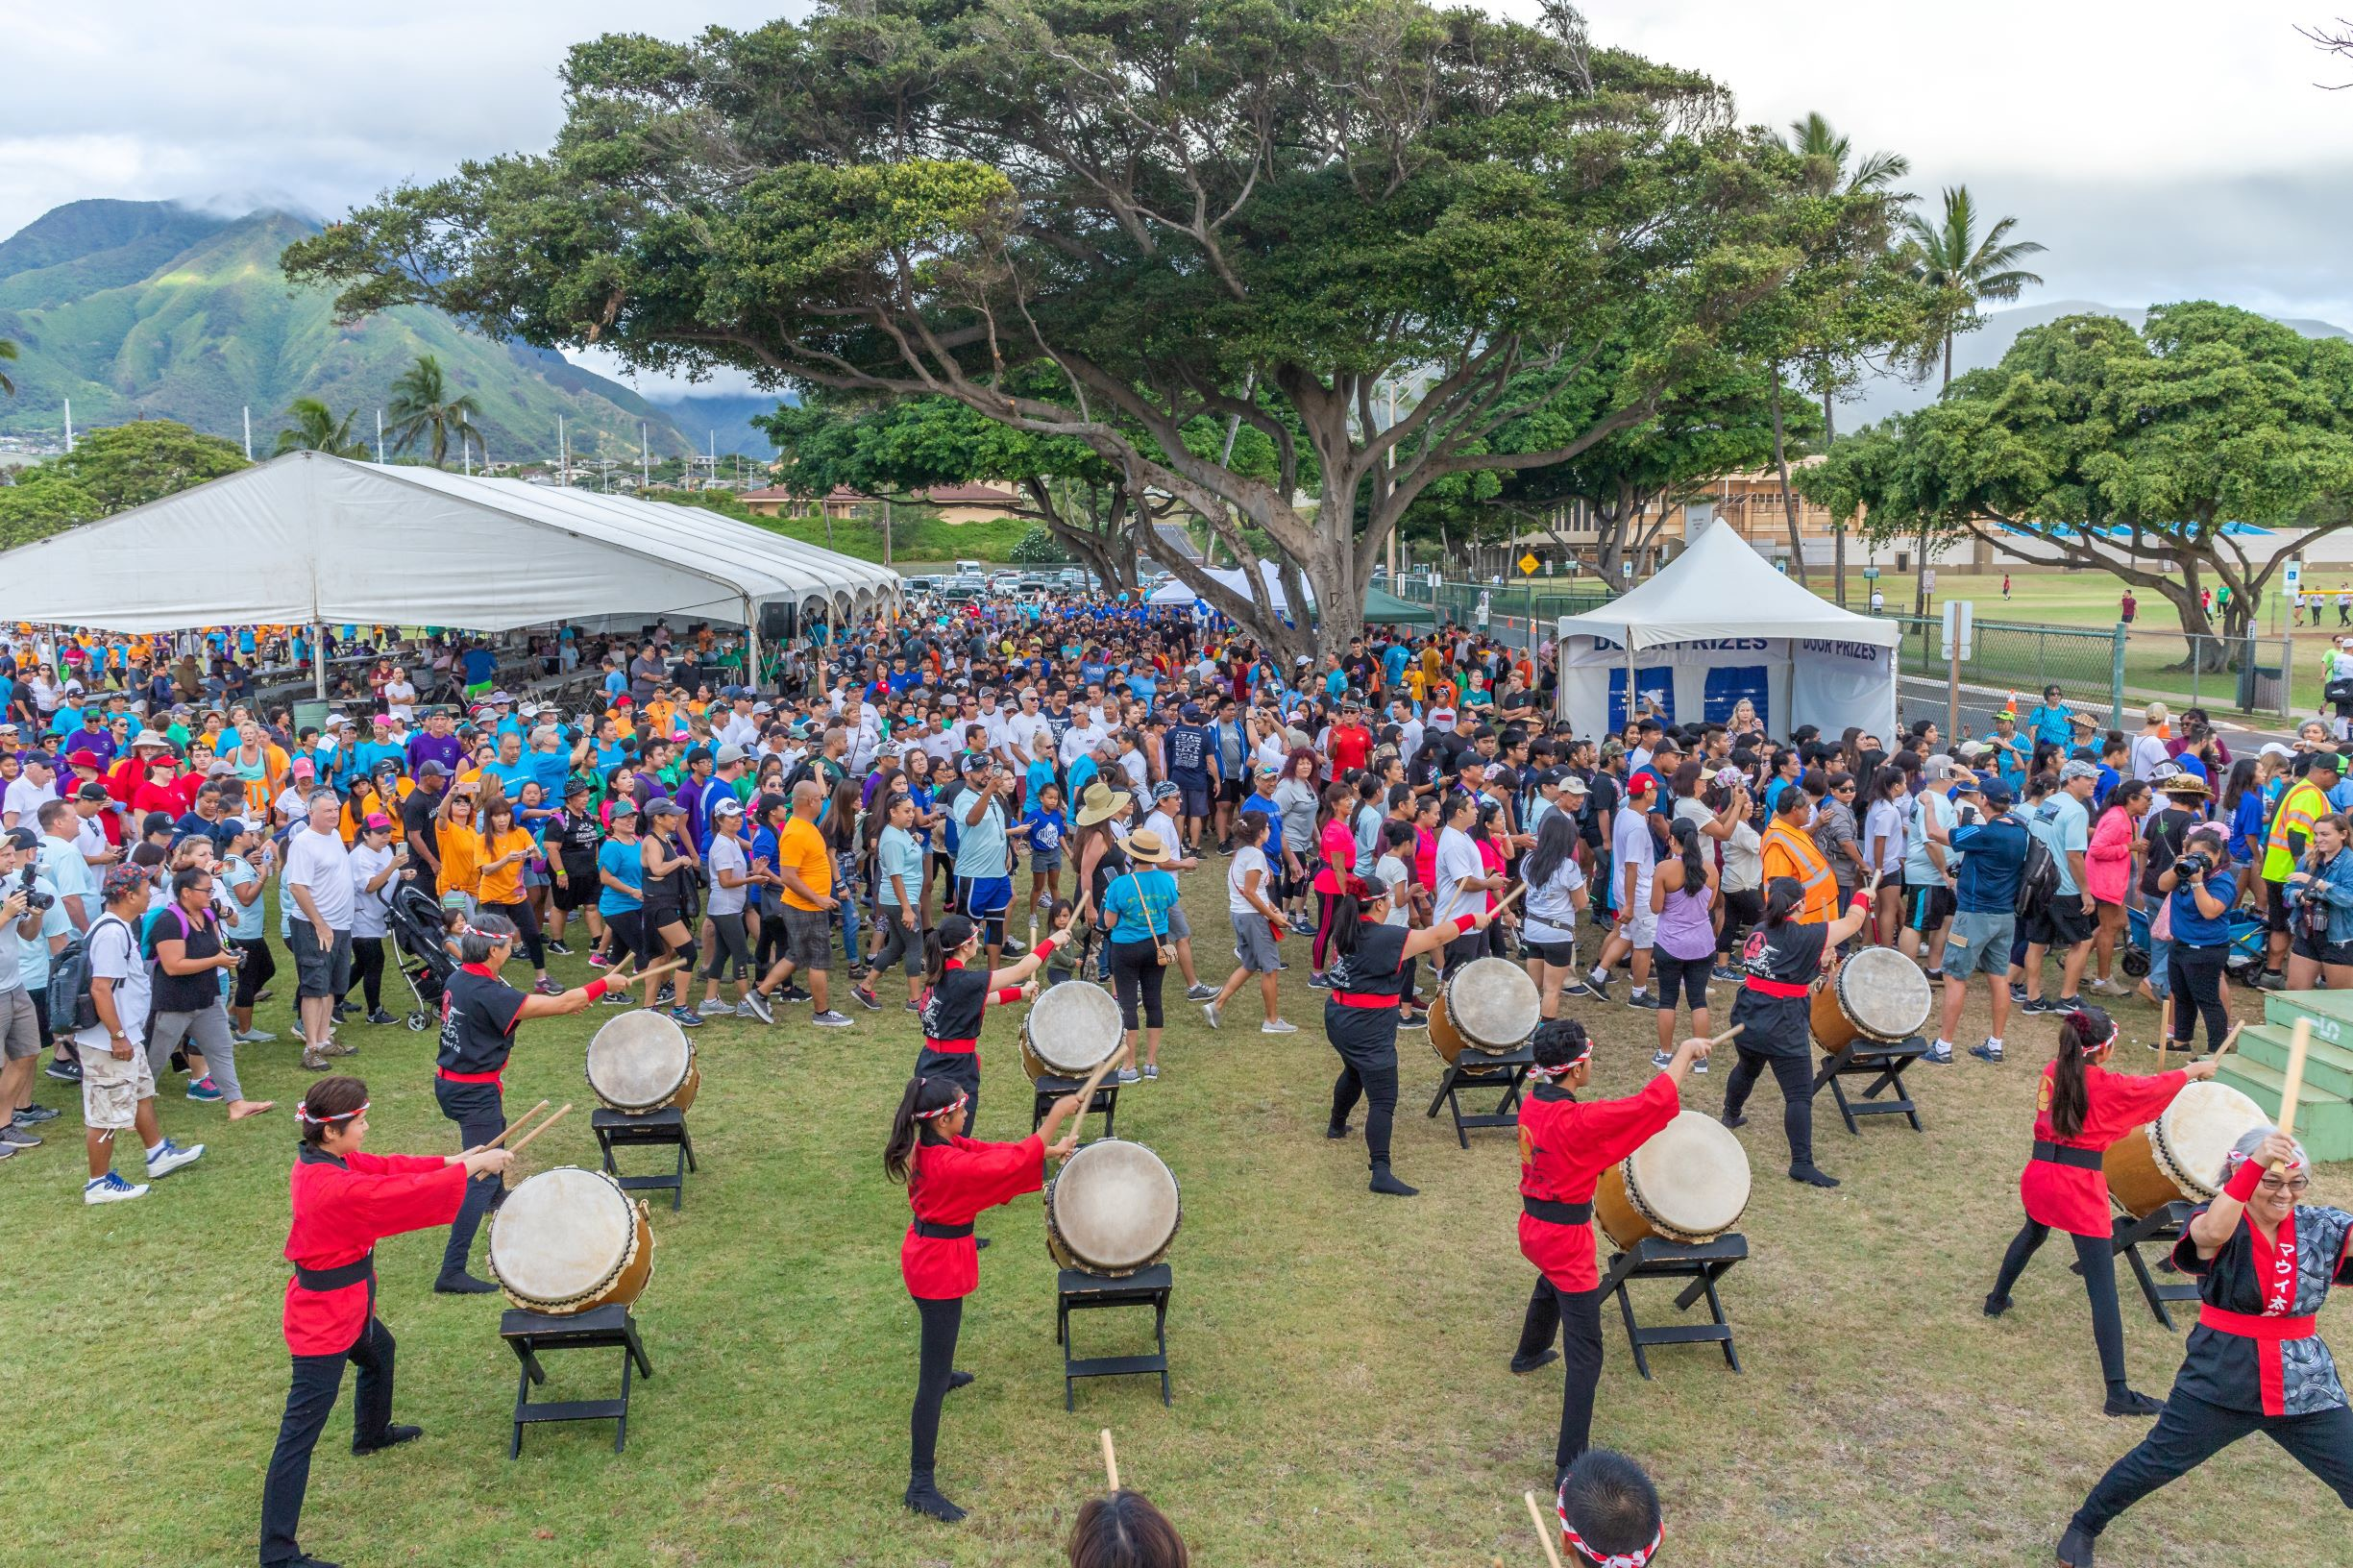 Maui County Charity Walk Raises $1.2 Million